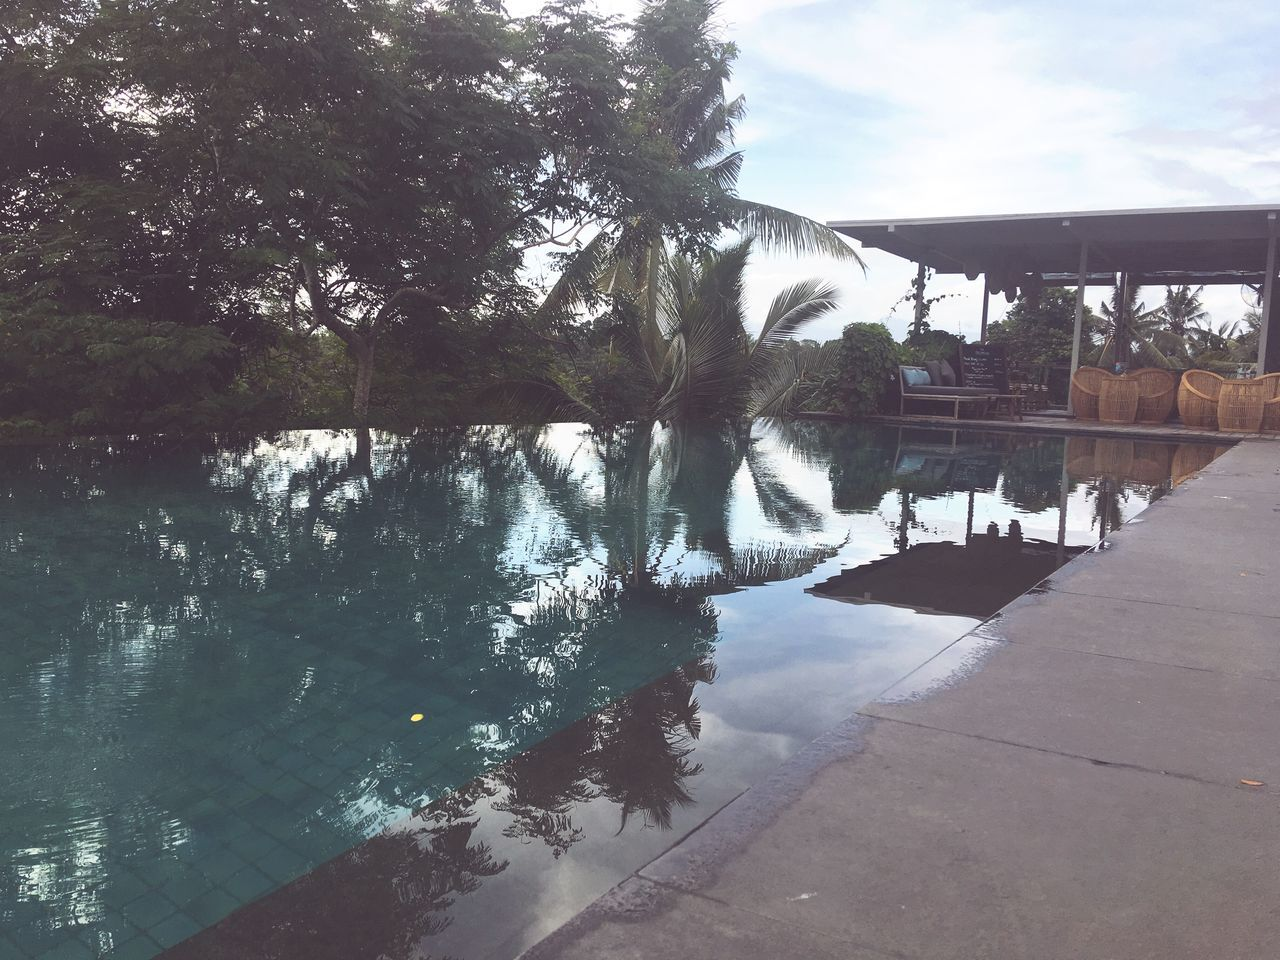 Bali Ubud Infinity Pool Swimming Pool Reflection Forest Swimming Paradise Picturesque Scenic Breathtaking View